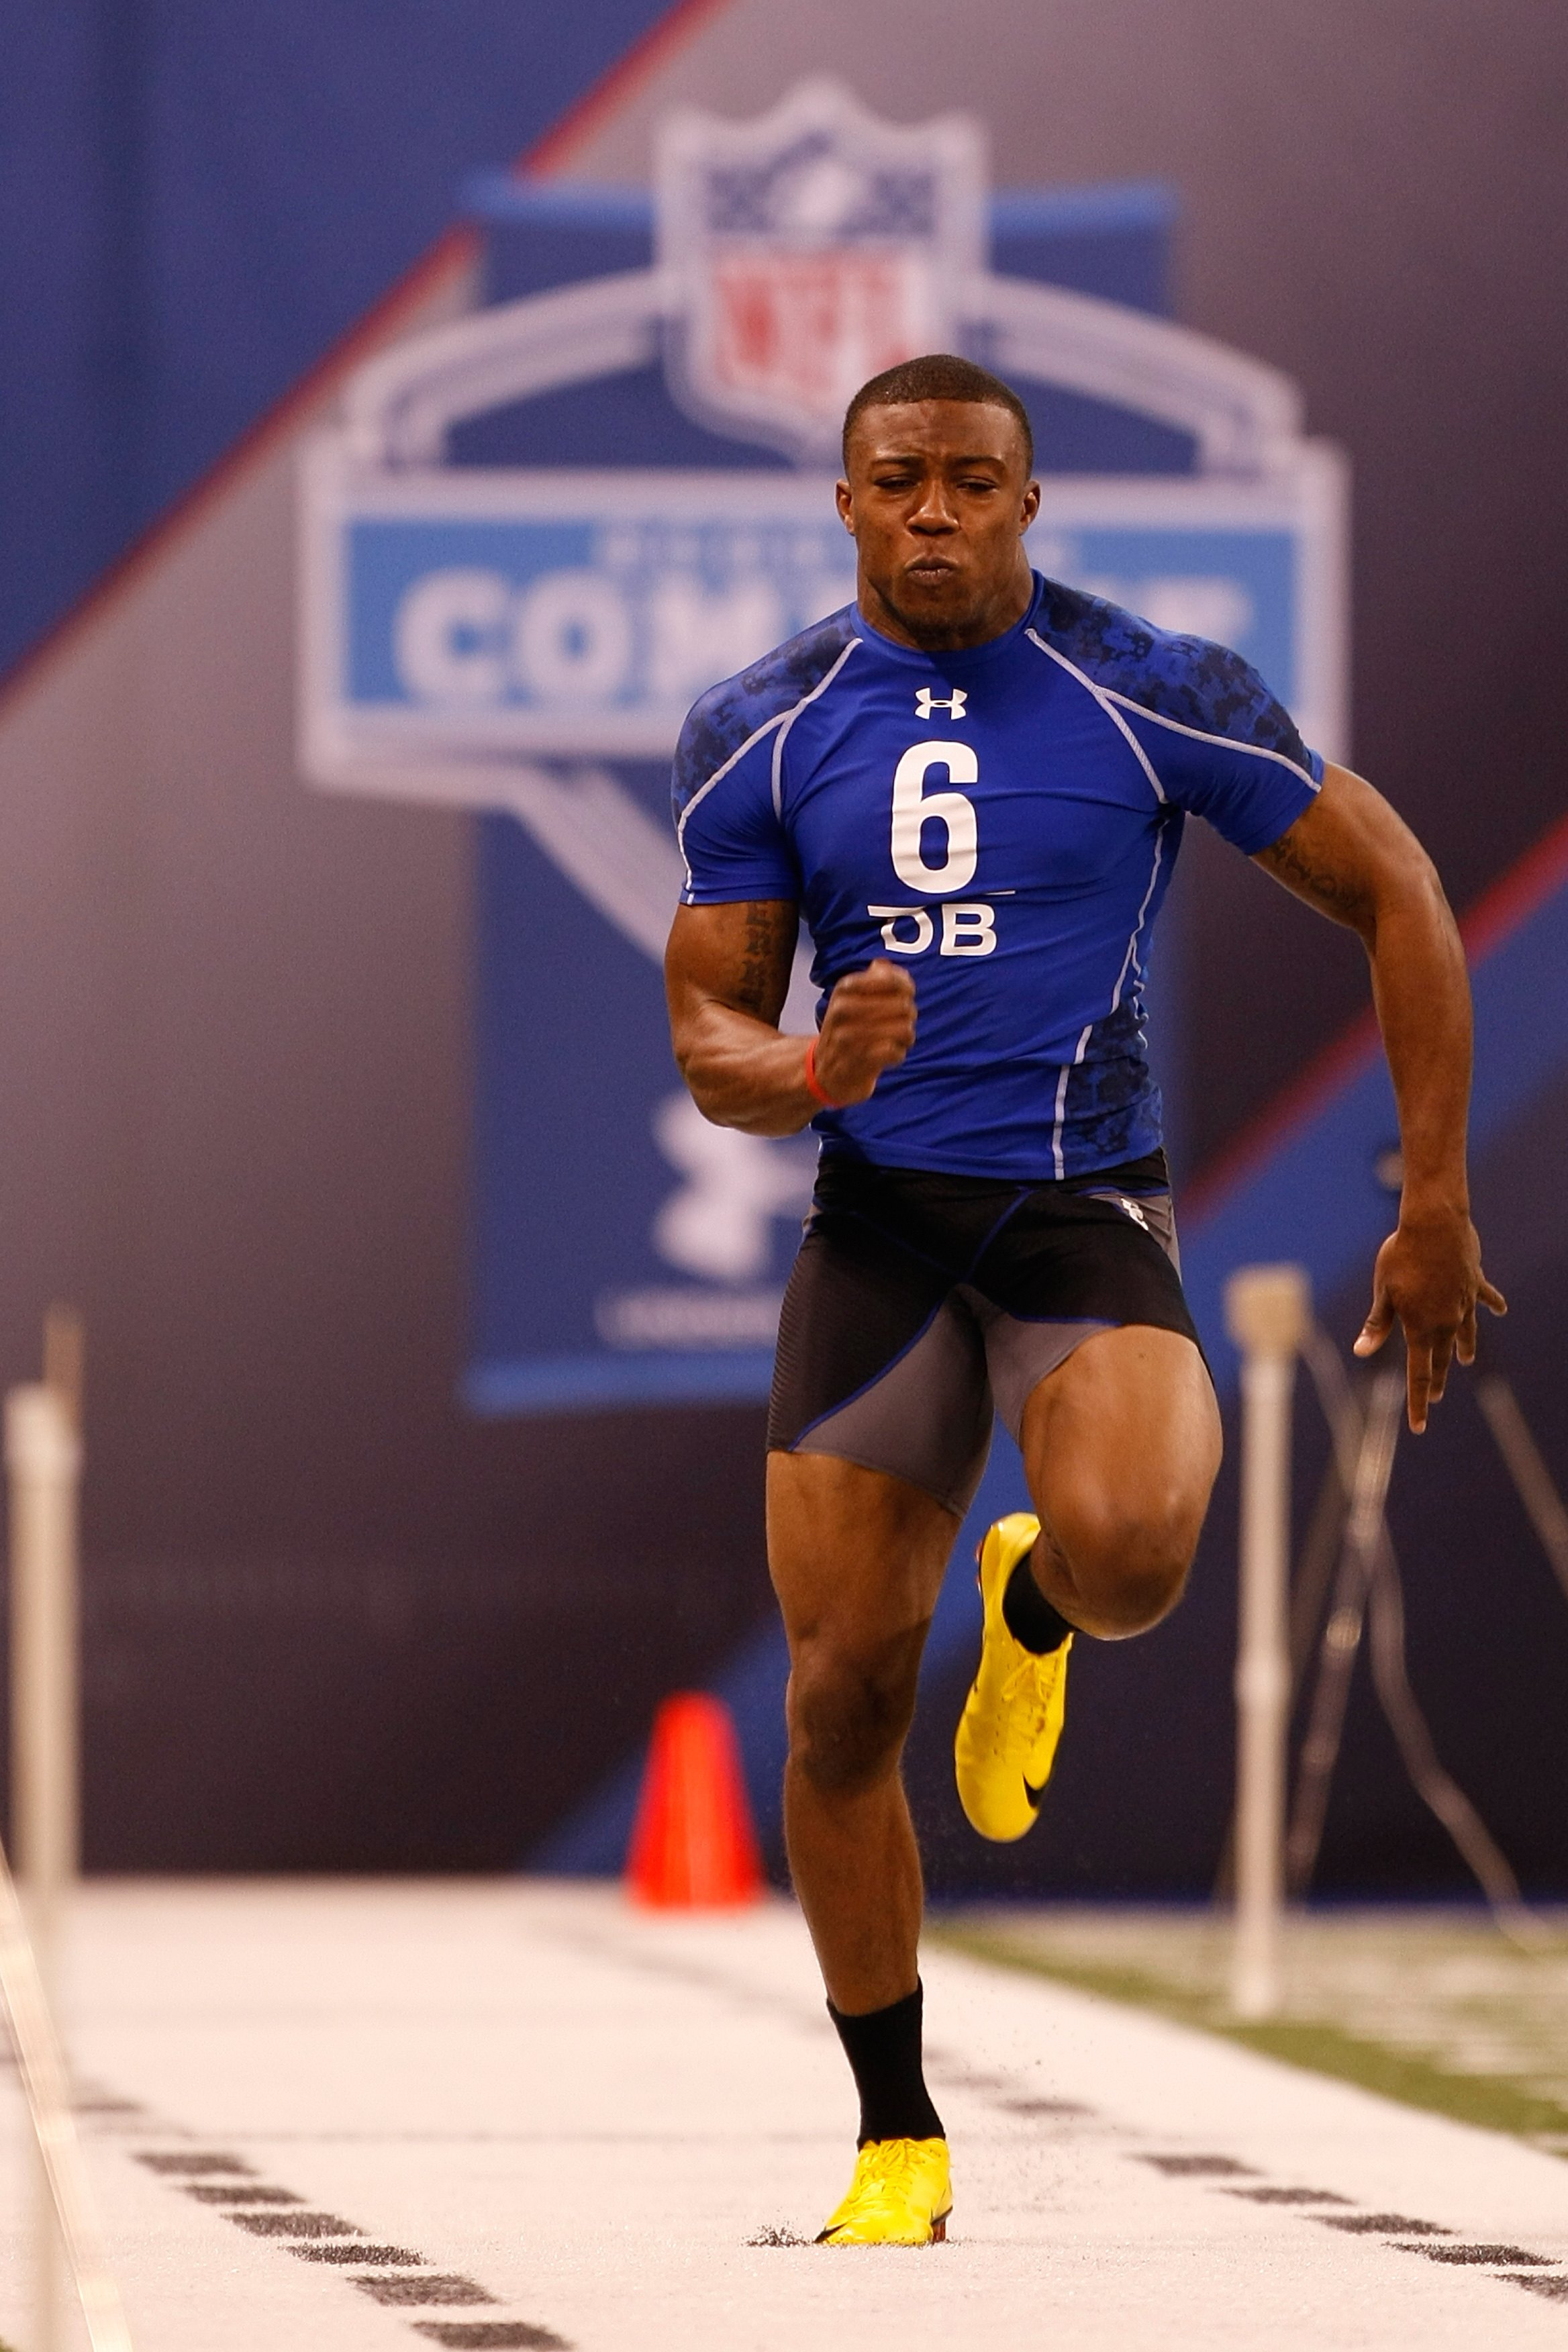 INDIANAPOLIS, IN - MARCH 2: Defensive back Eric Berry of Tennessee runs the 40 yard dash during the NFL Scouting Combine presented by Under Armour at Lucas Oil Stadium on March 2, 2010 in Indianapolis, Indiana. (Photo by Scott Boehm/Getty Images)